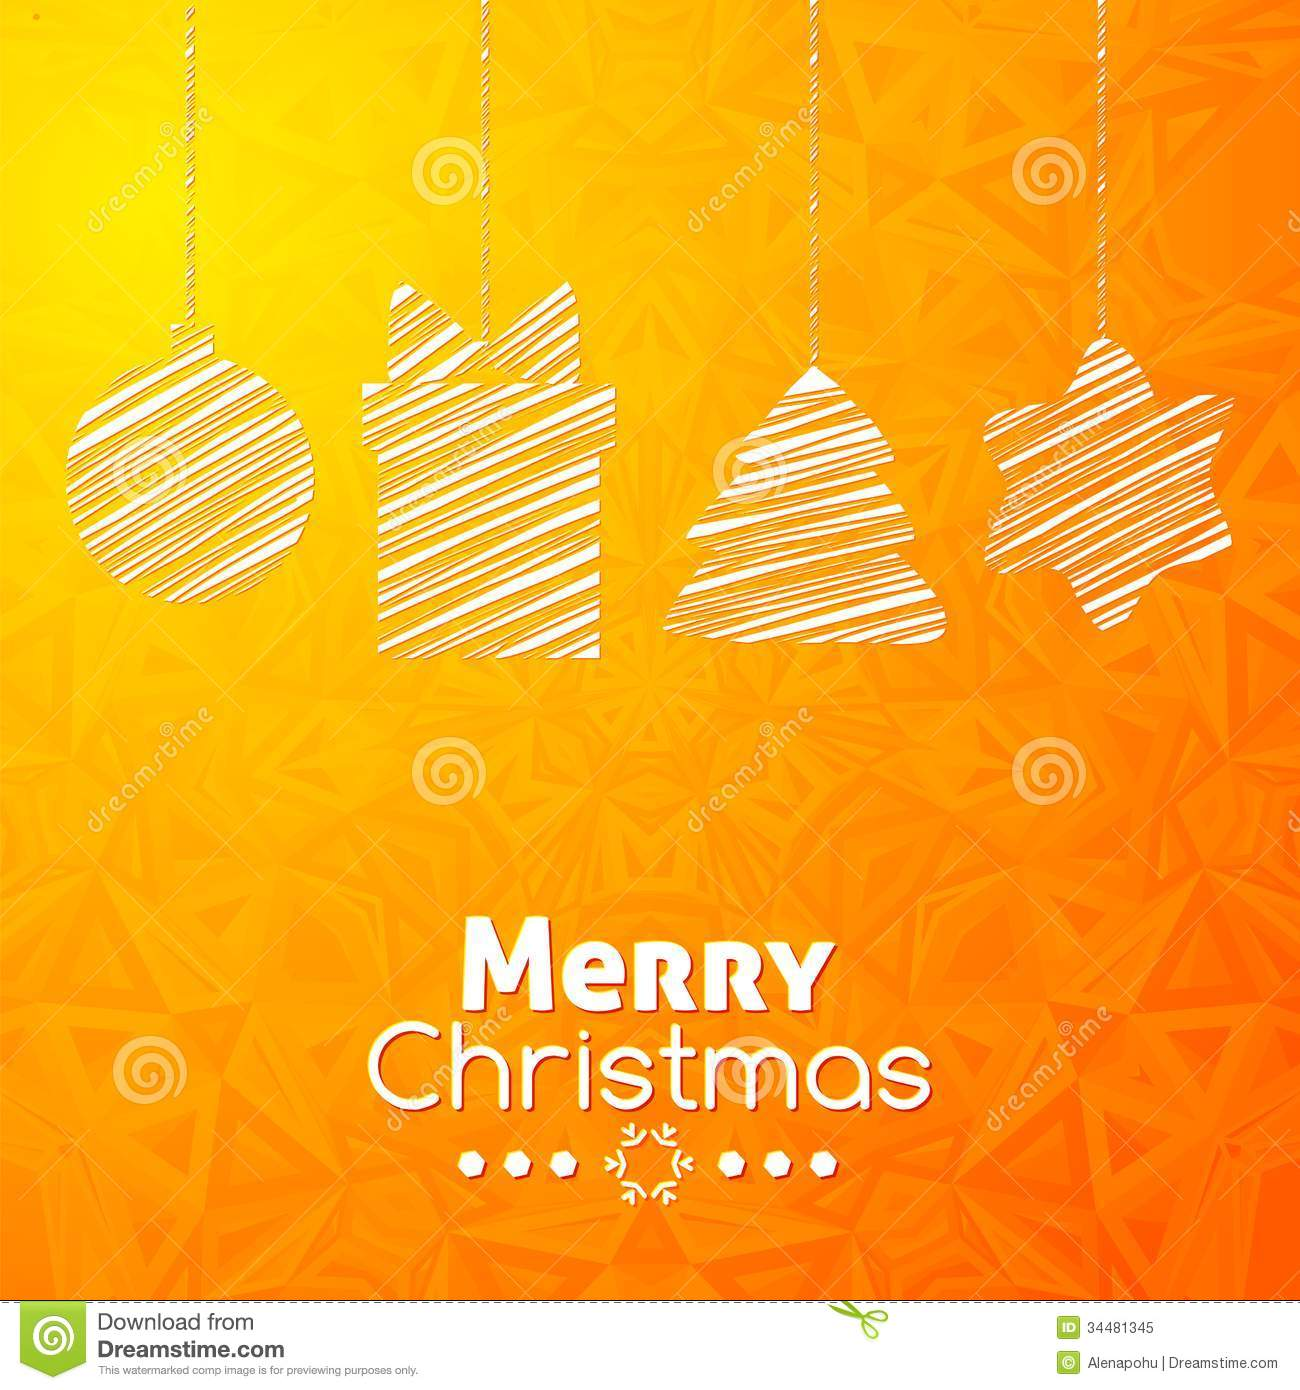 Merry Christmas Gifts Card Abstract Background Royalty ...